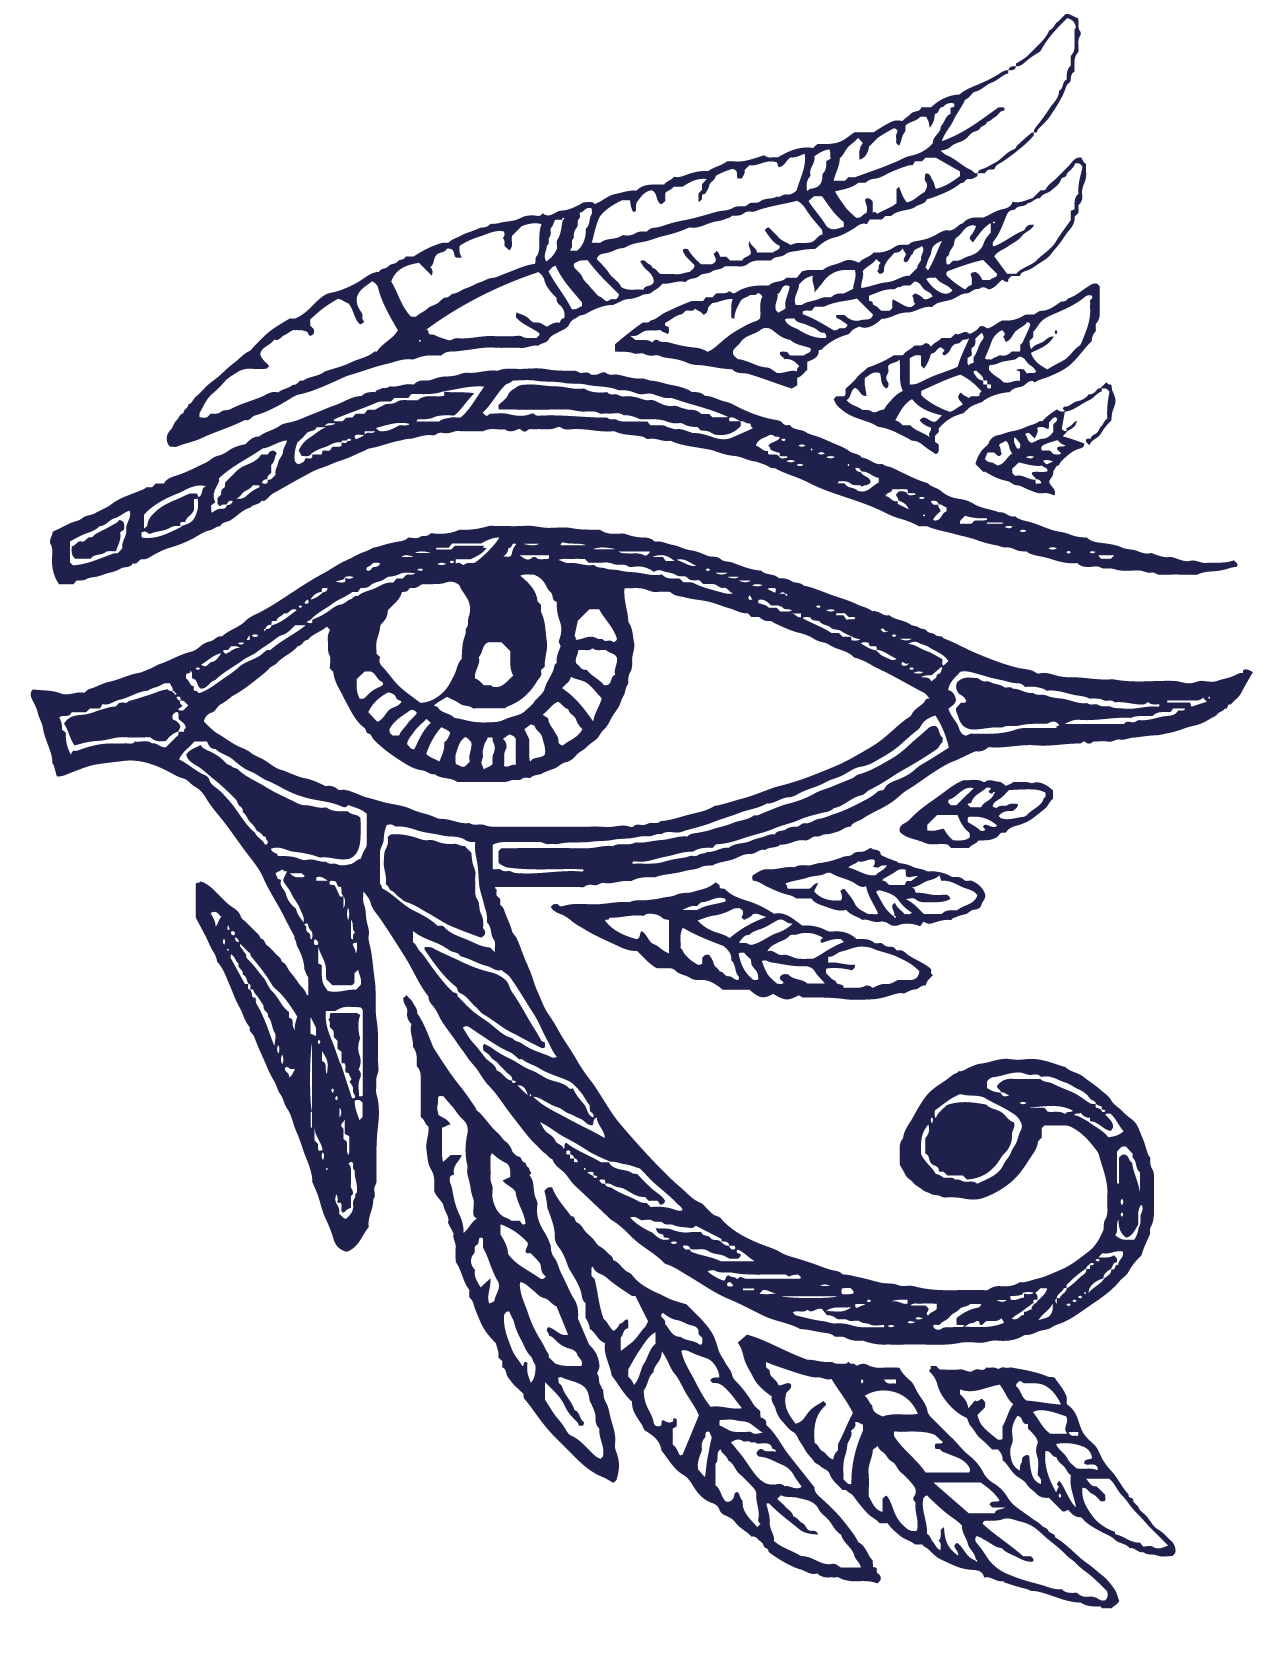 1280x1658 The Eye Of Horus (The Egyptian Eye) And Its Meaning